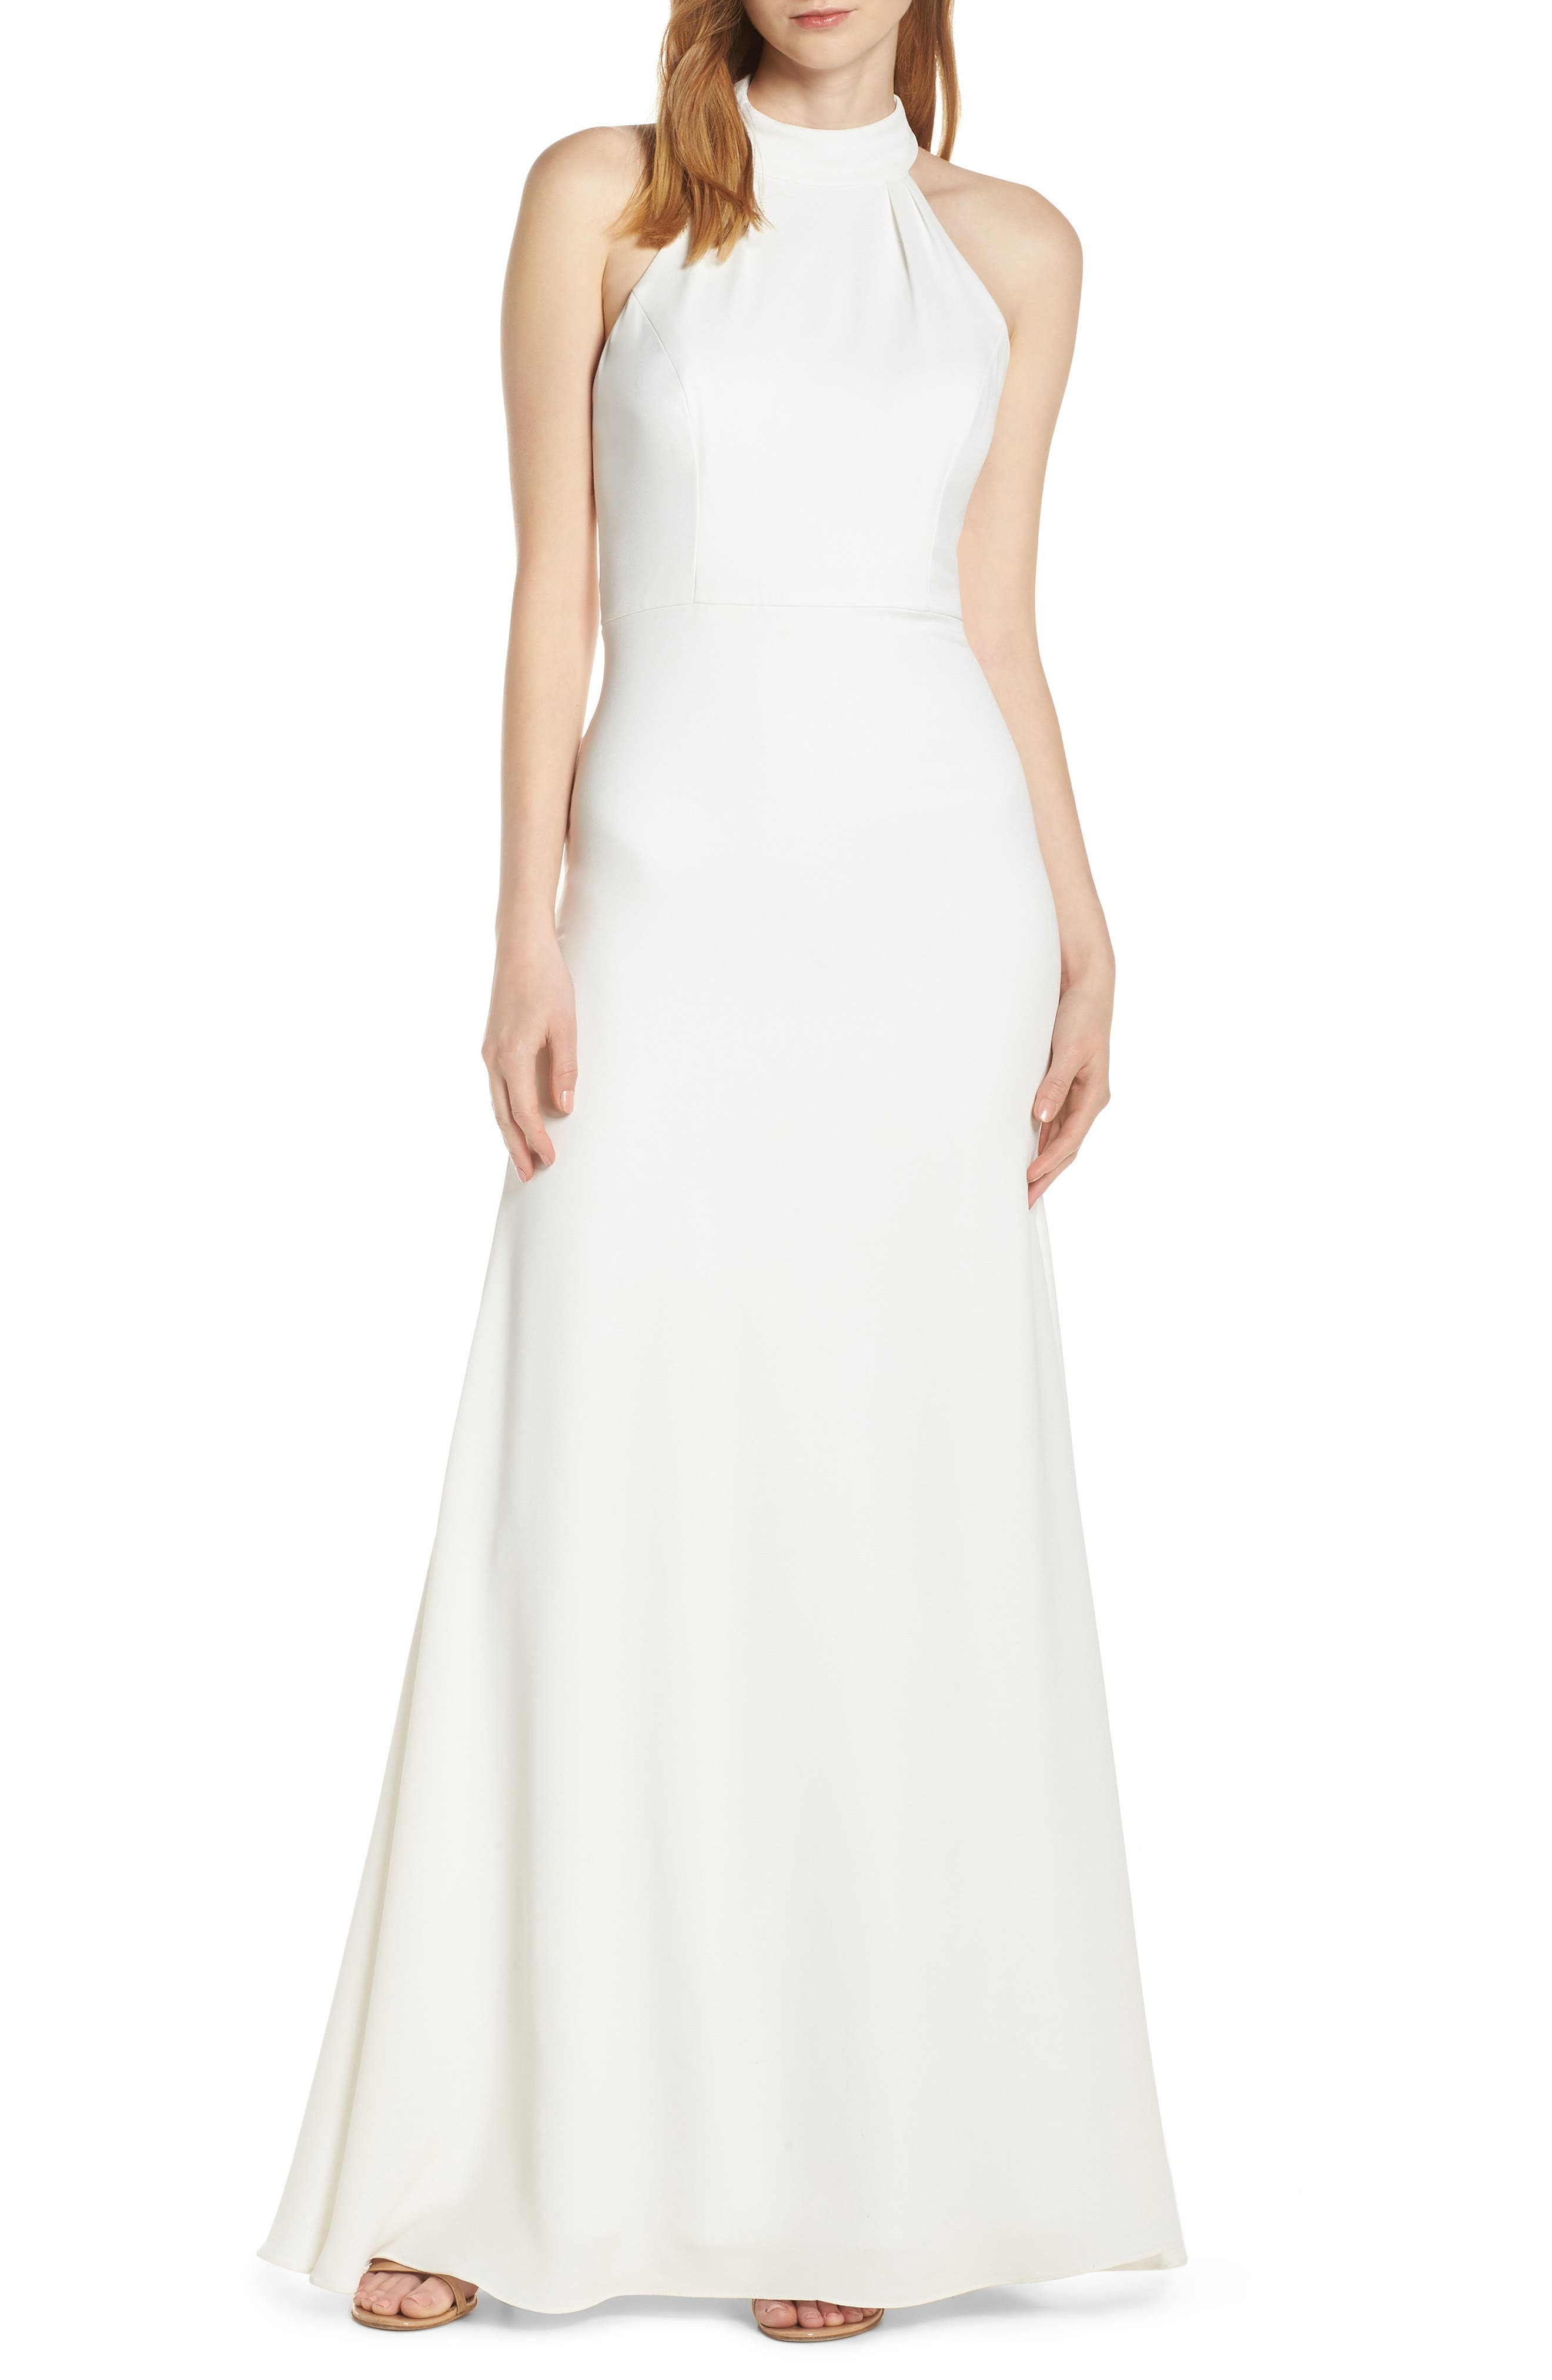 Hayley Paige Occasions Mock Neck Strappy Back Crepe Evening Dress, Ivory